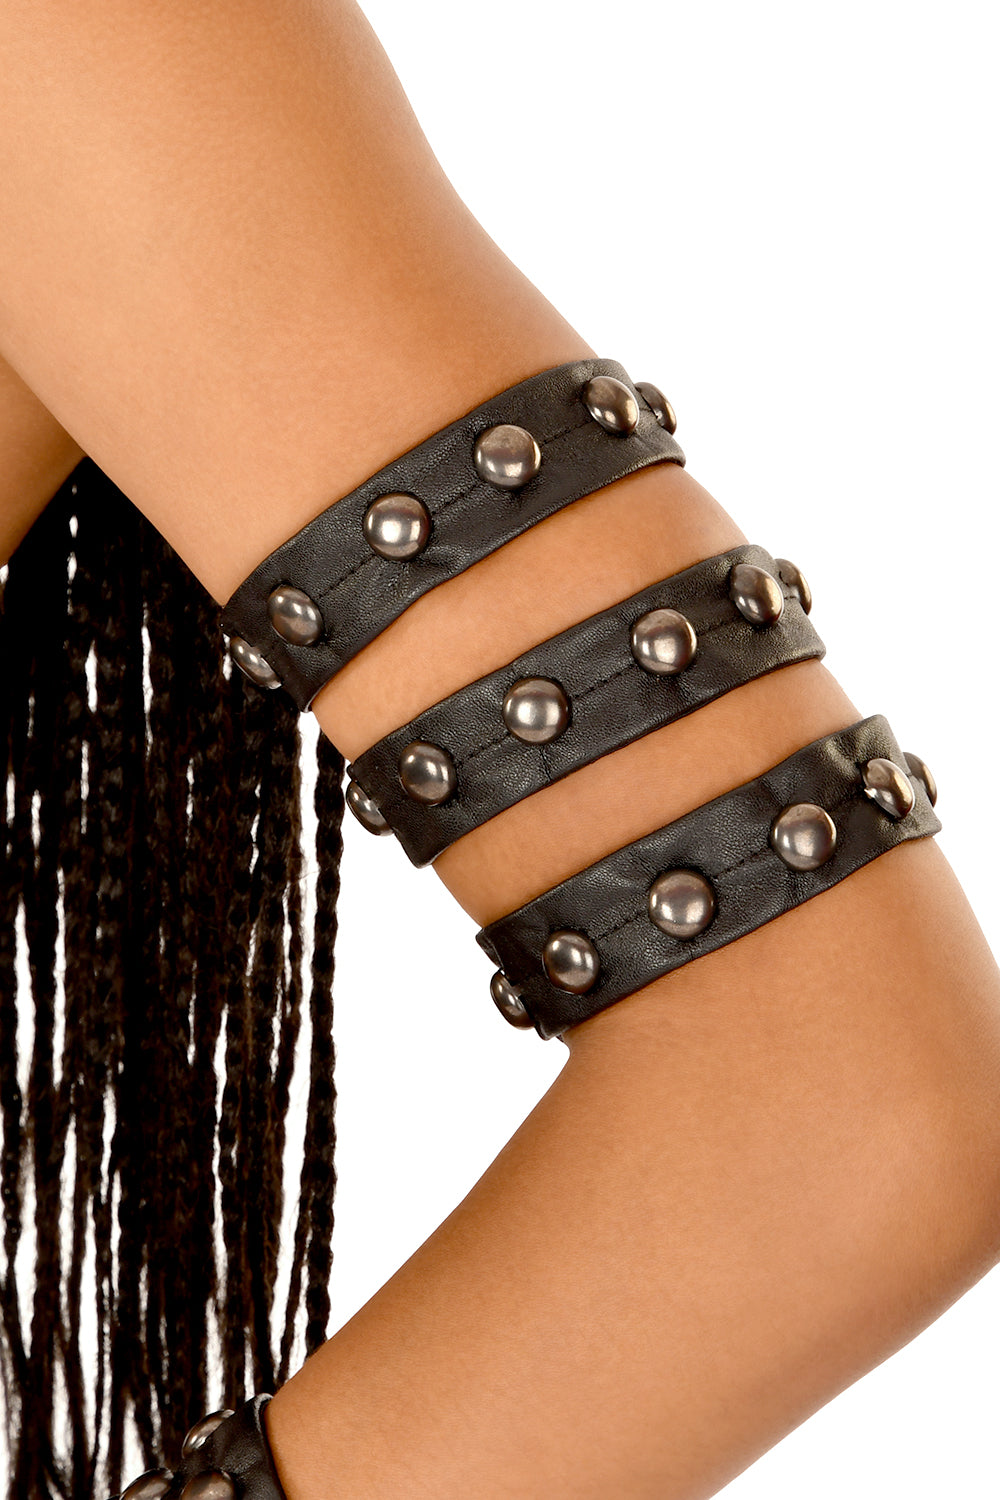 Enchantress Arm Bands